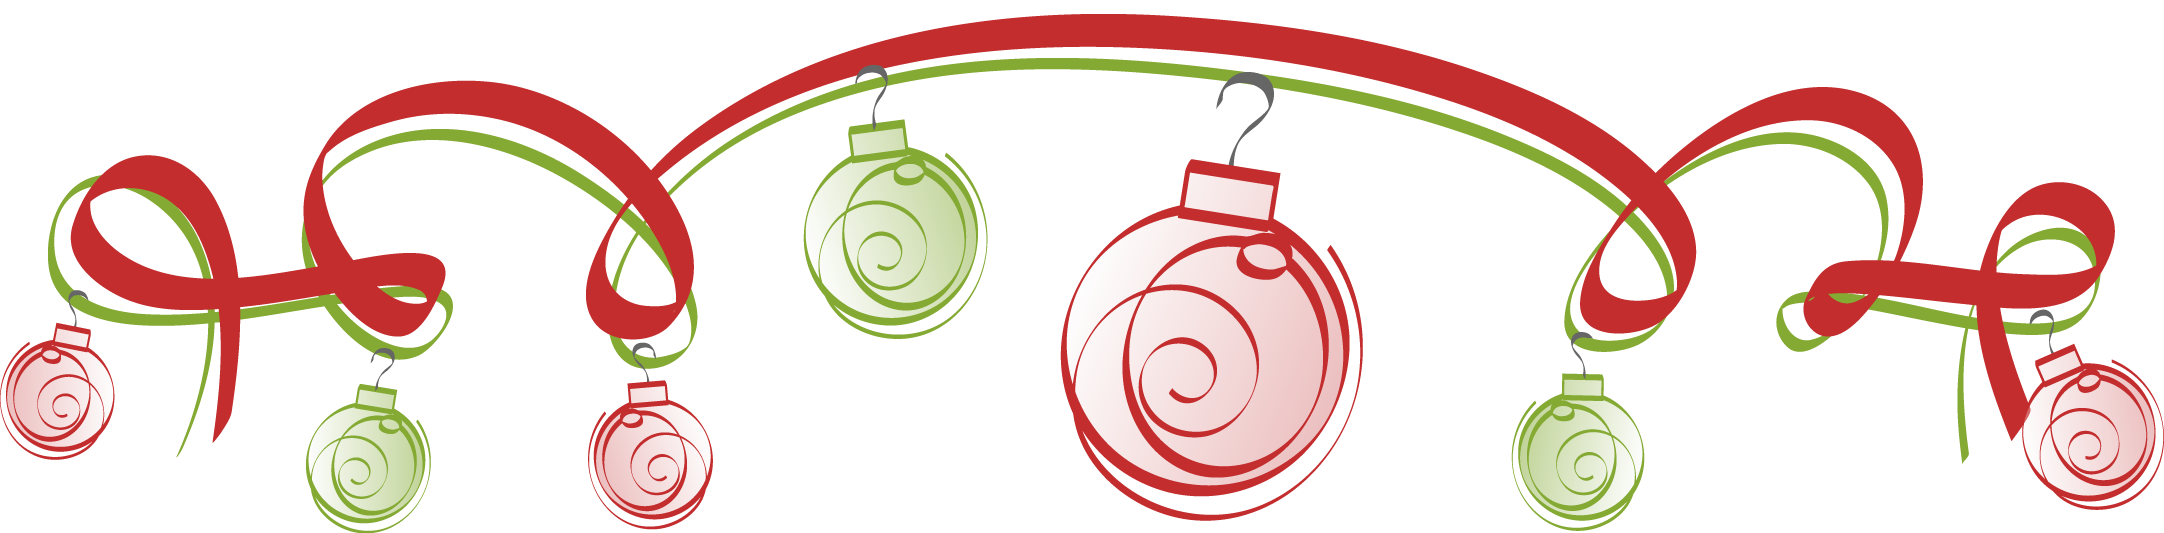 Holiday Ribbons and Ornaments